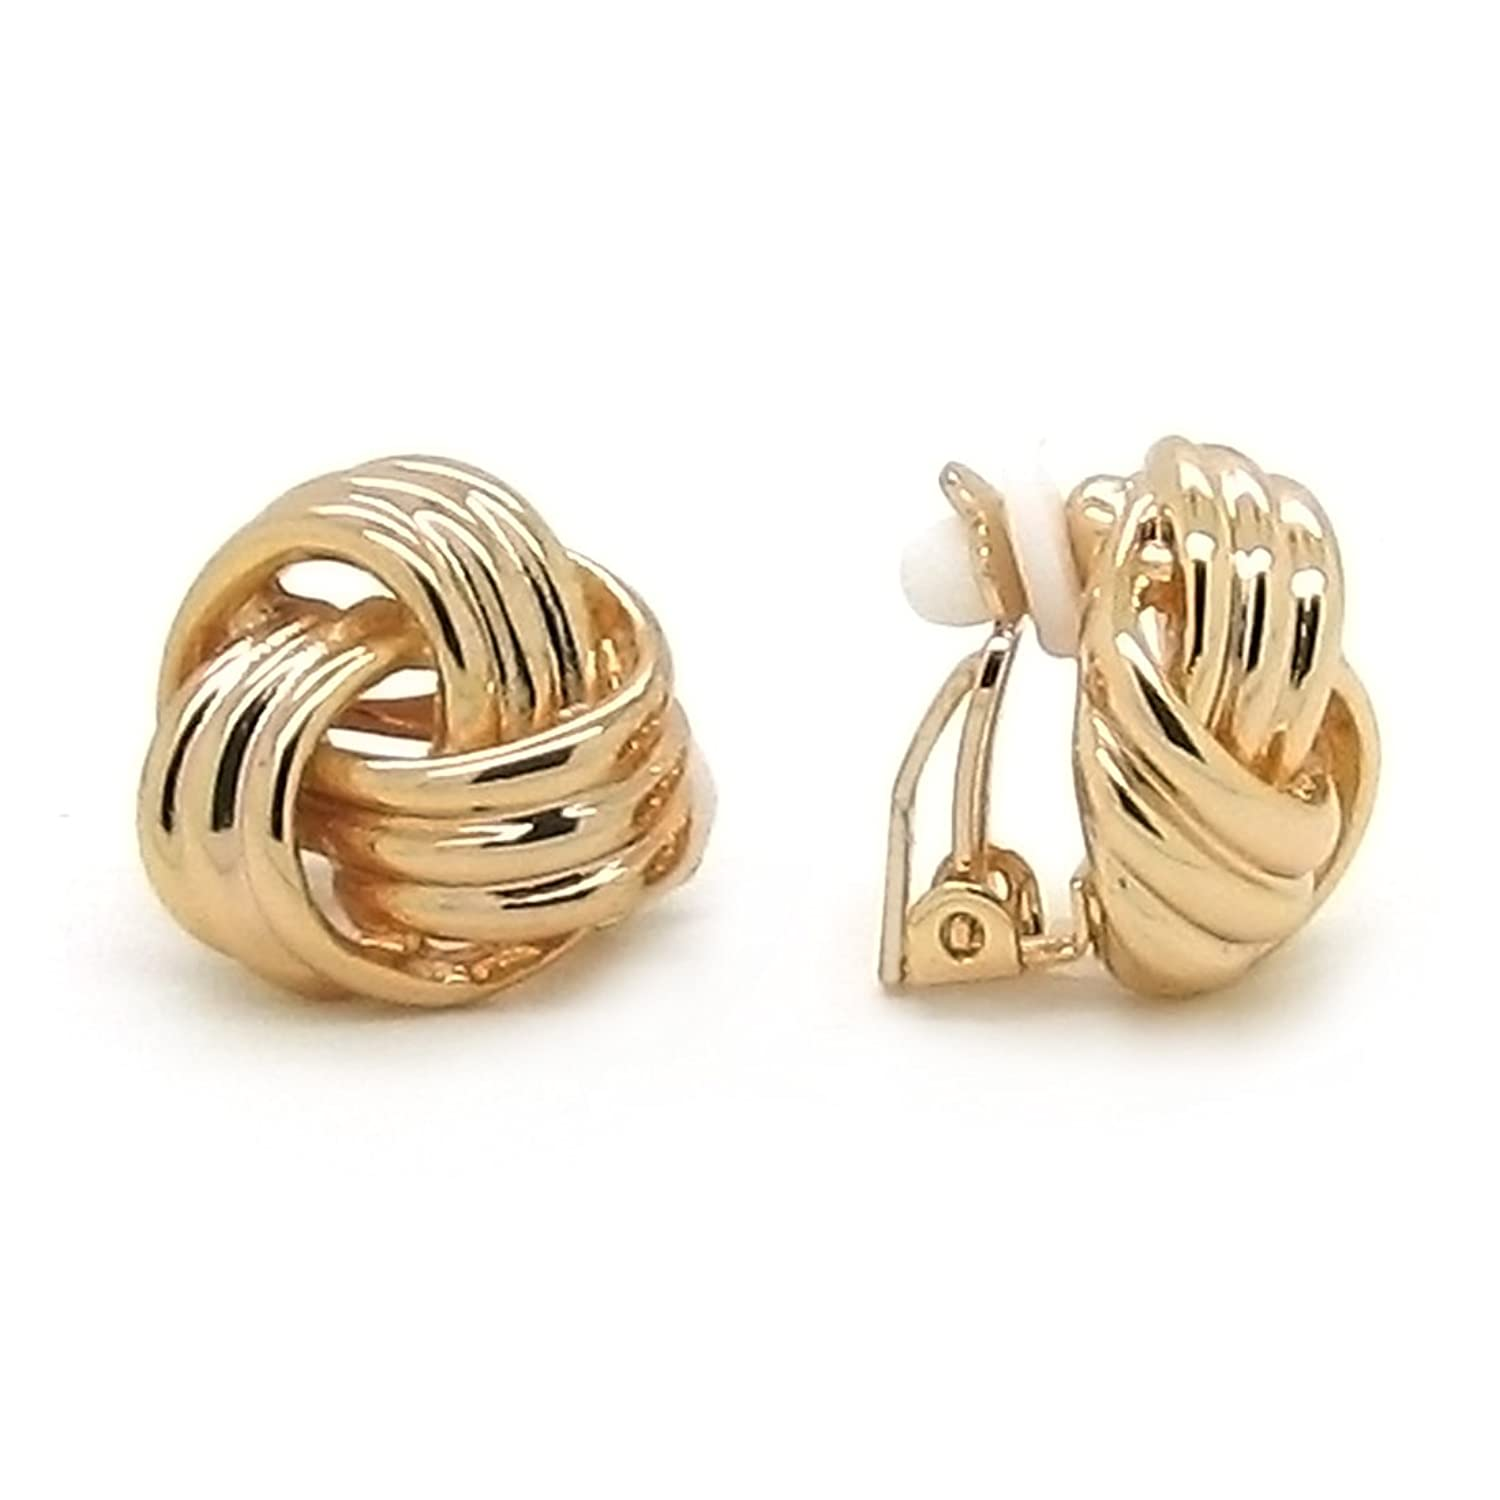 earrings hoop a design beautifully back secured twisted of with pin polished crafted showcasing snap pair